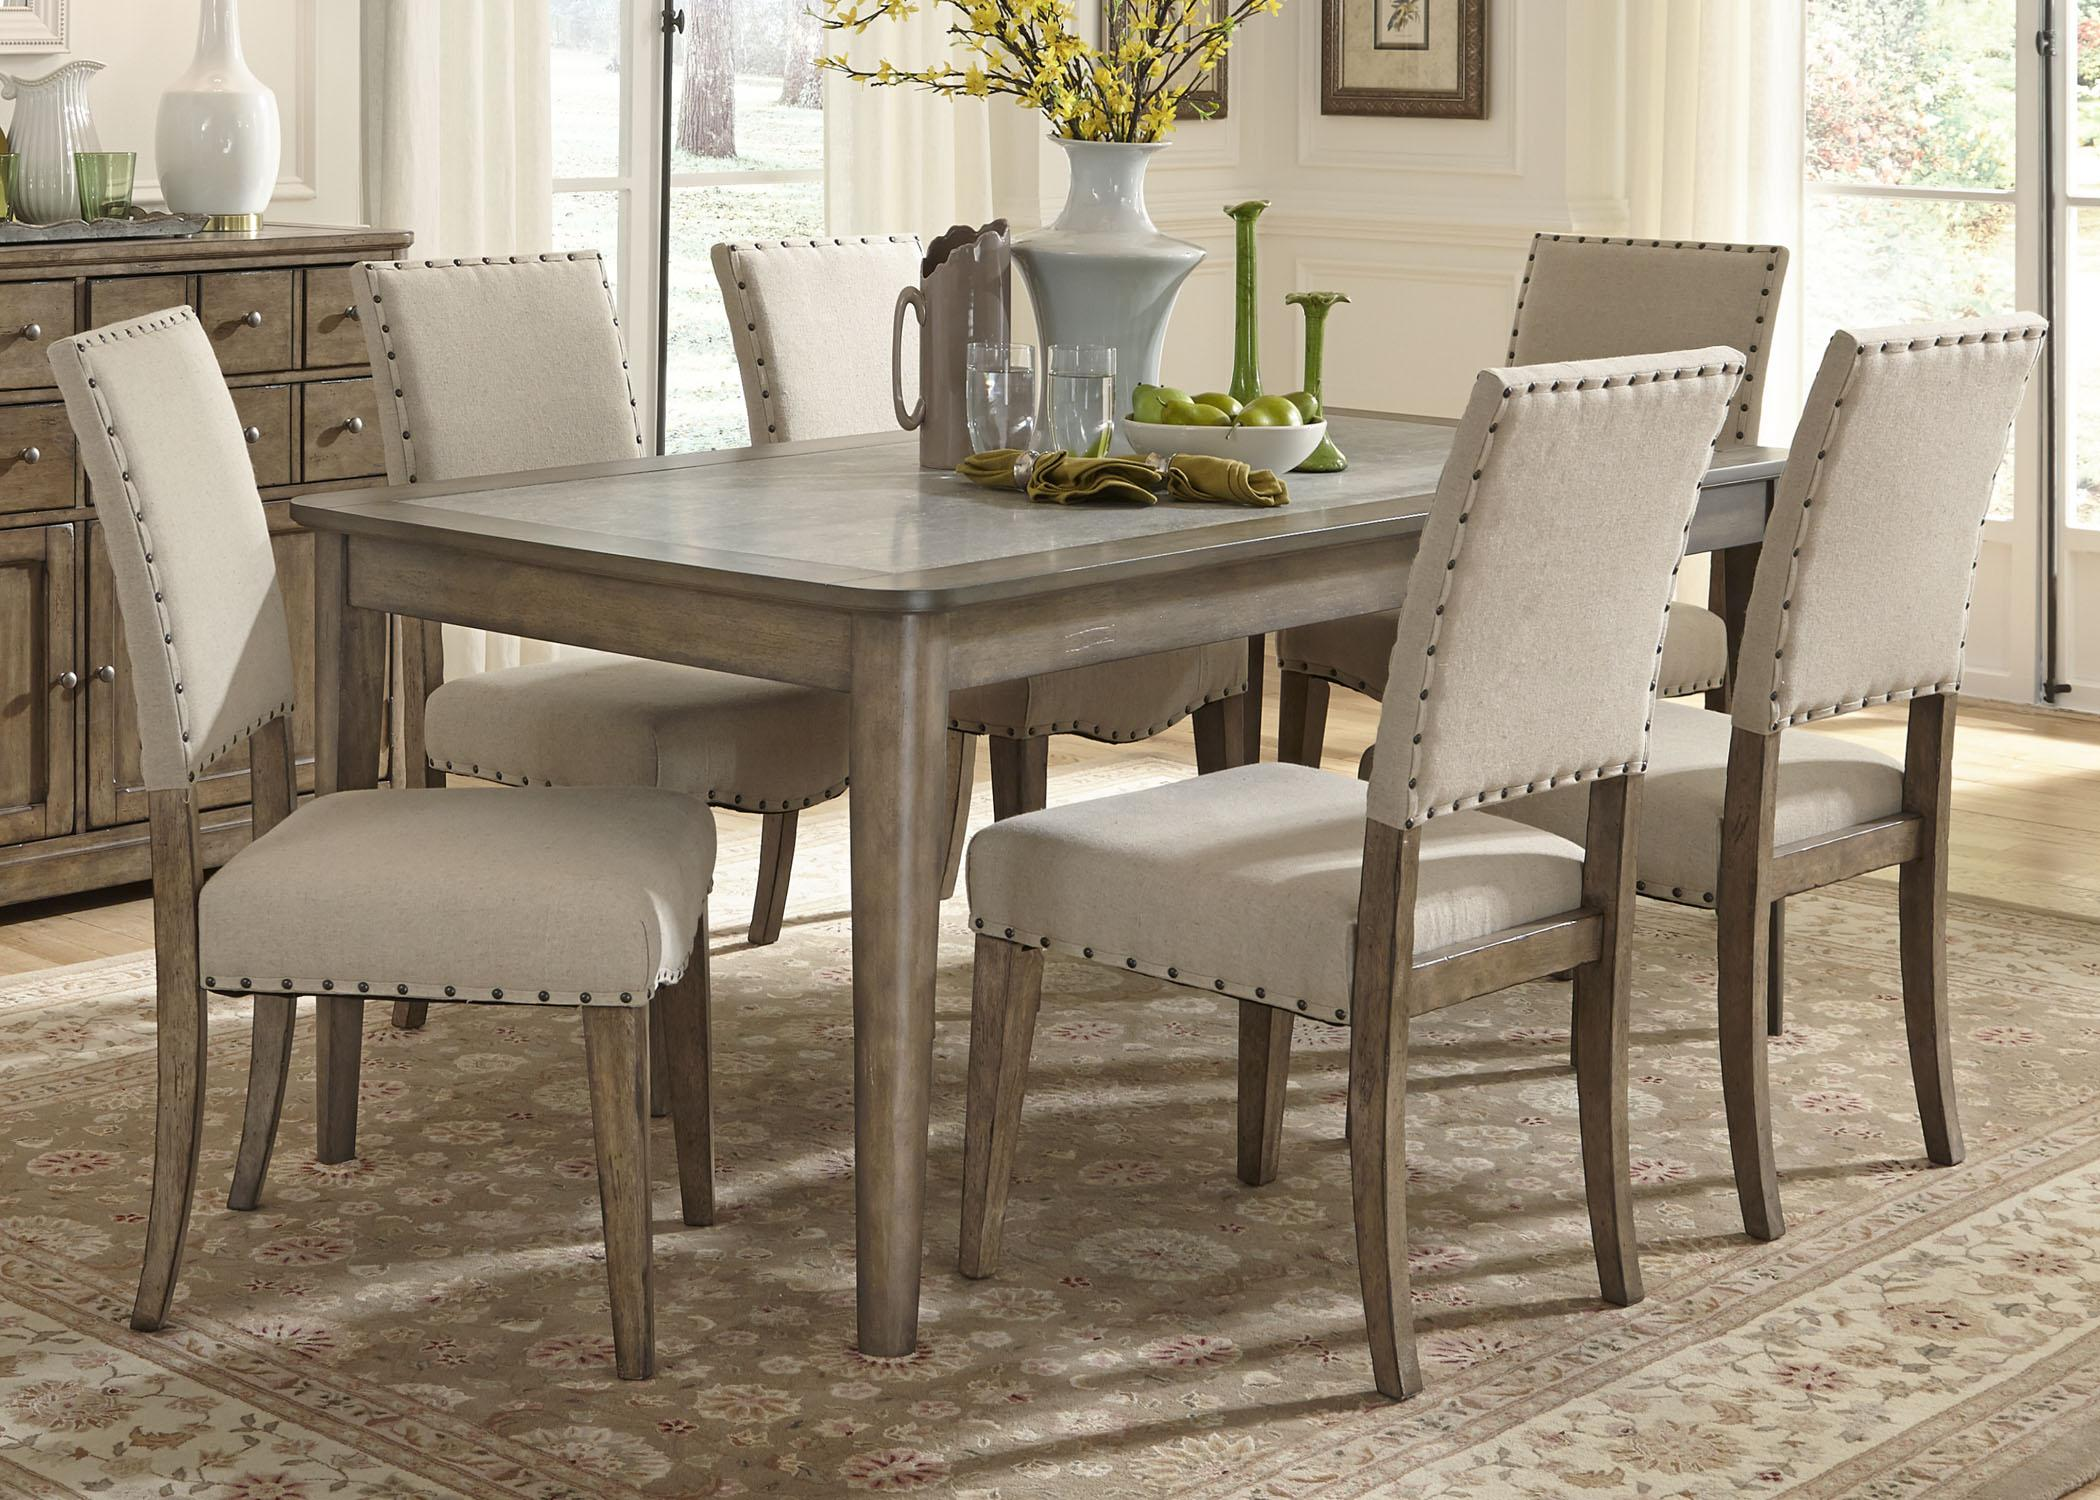 breakfast table and chairs set 14 inch round chair cushions liberty furniture weatherford casual rustic 7 piece dining